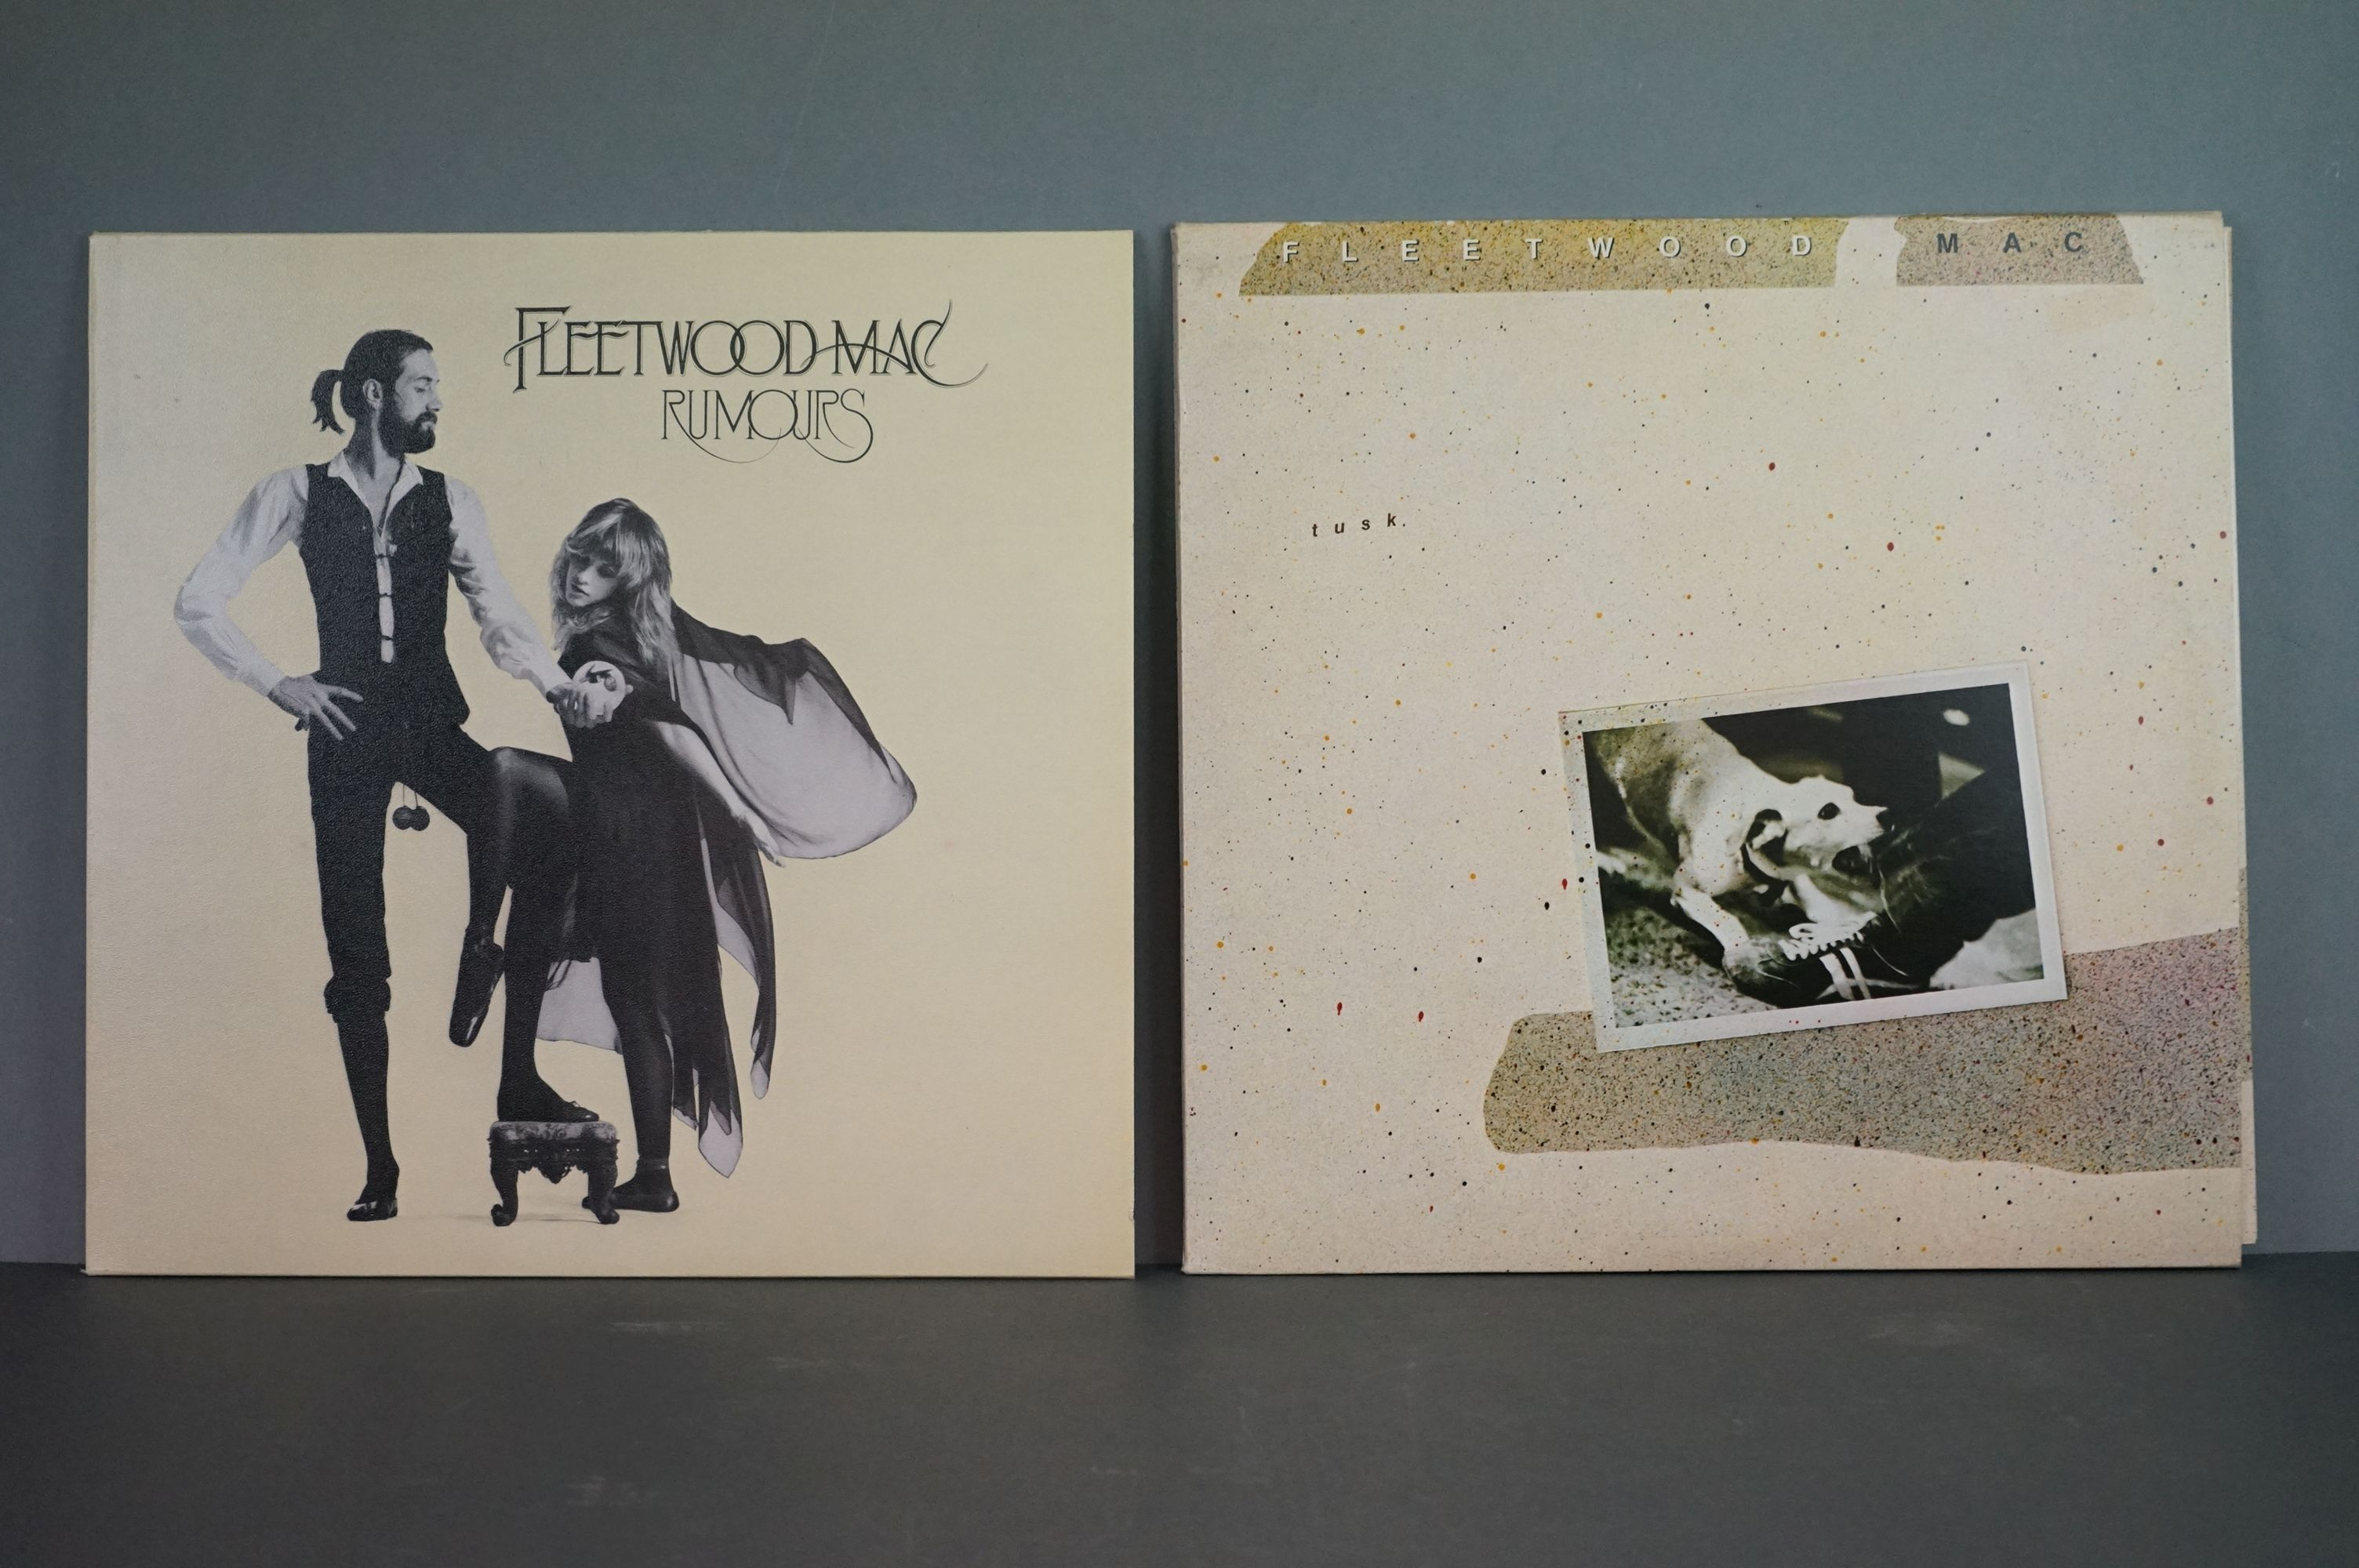 Vinyl - Two Fleetwood Mac LPs to include Tusk (K66088) and Rumours (K56344), sleeves and vinyl vg+